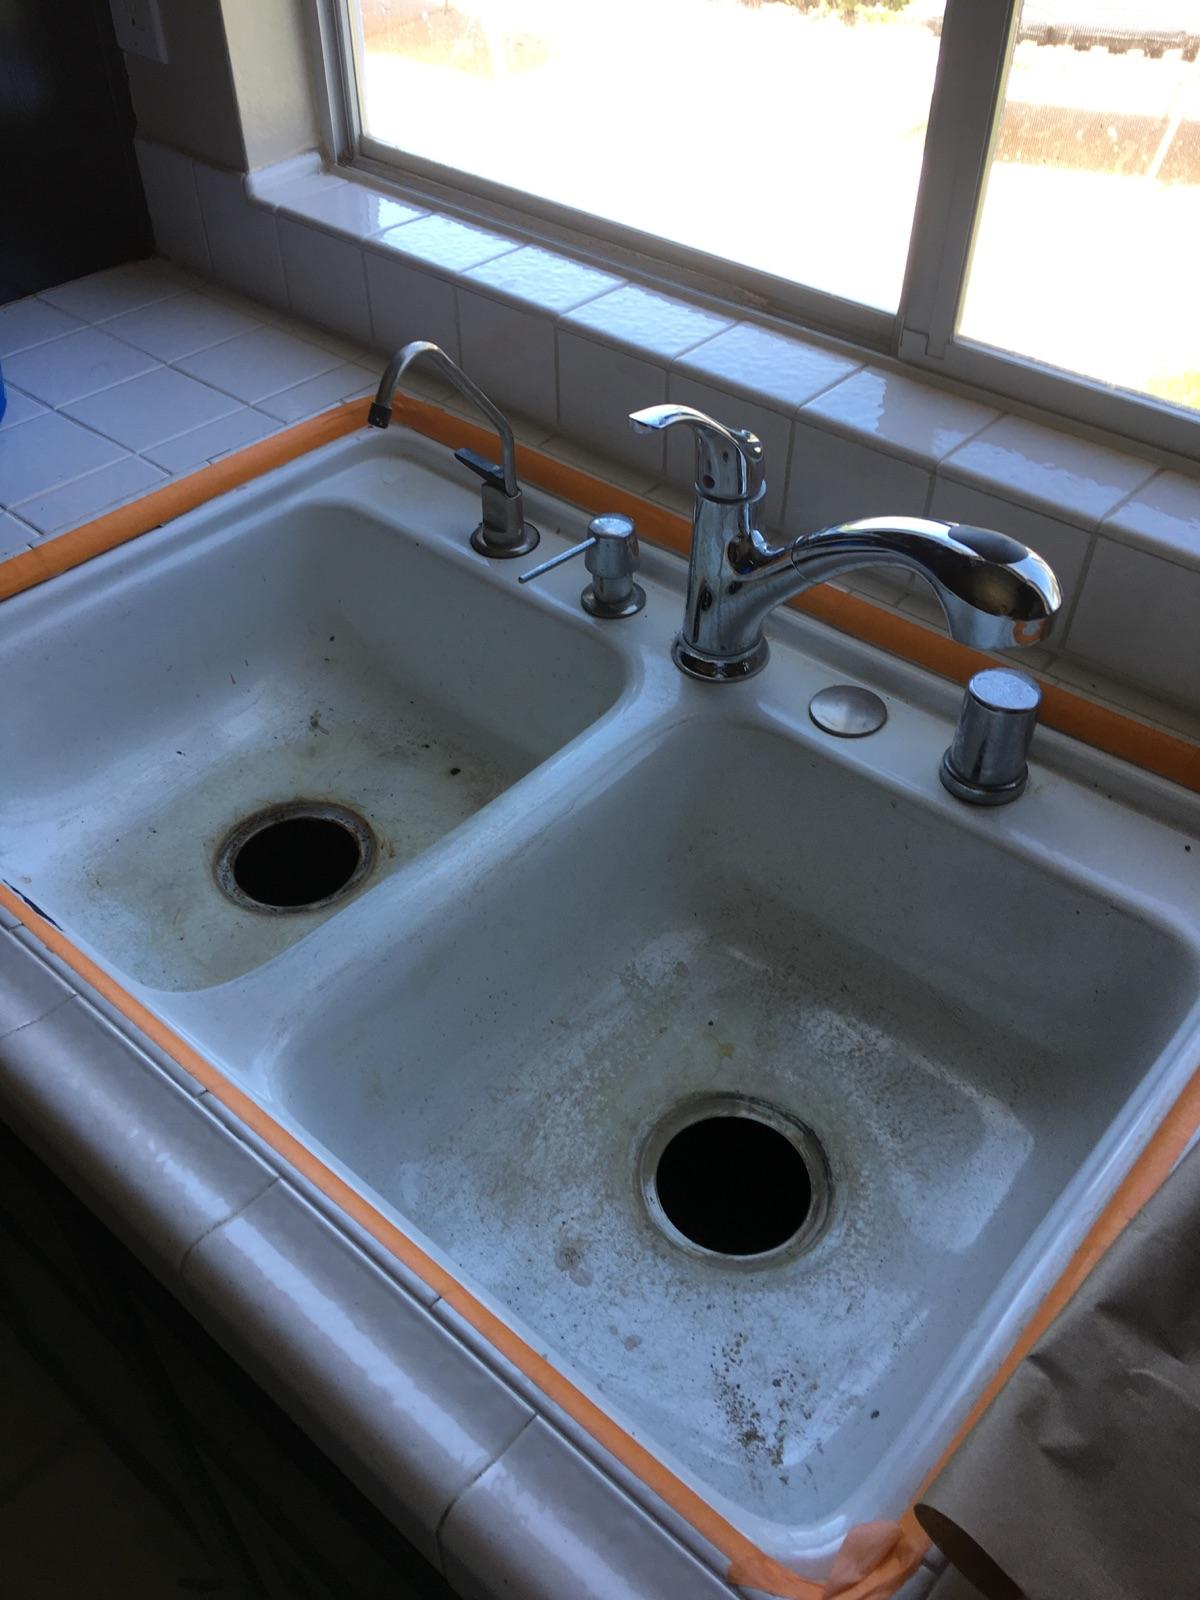 Porcelain Kitchen Sink-A.jpg